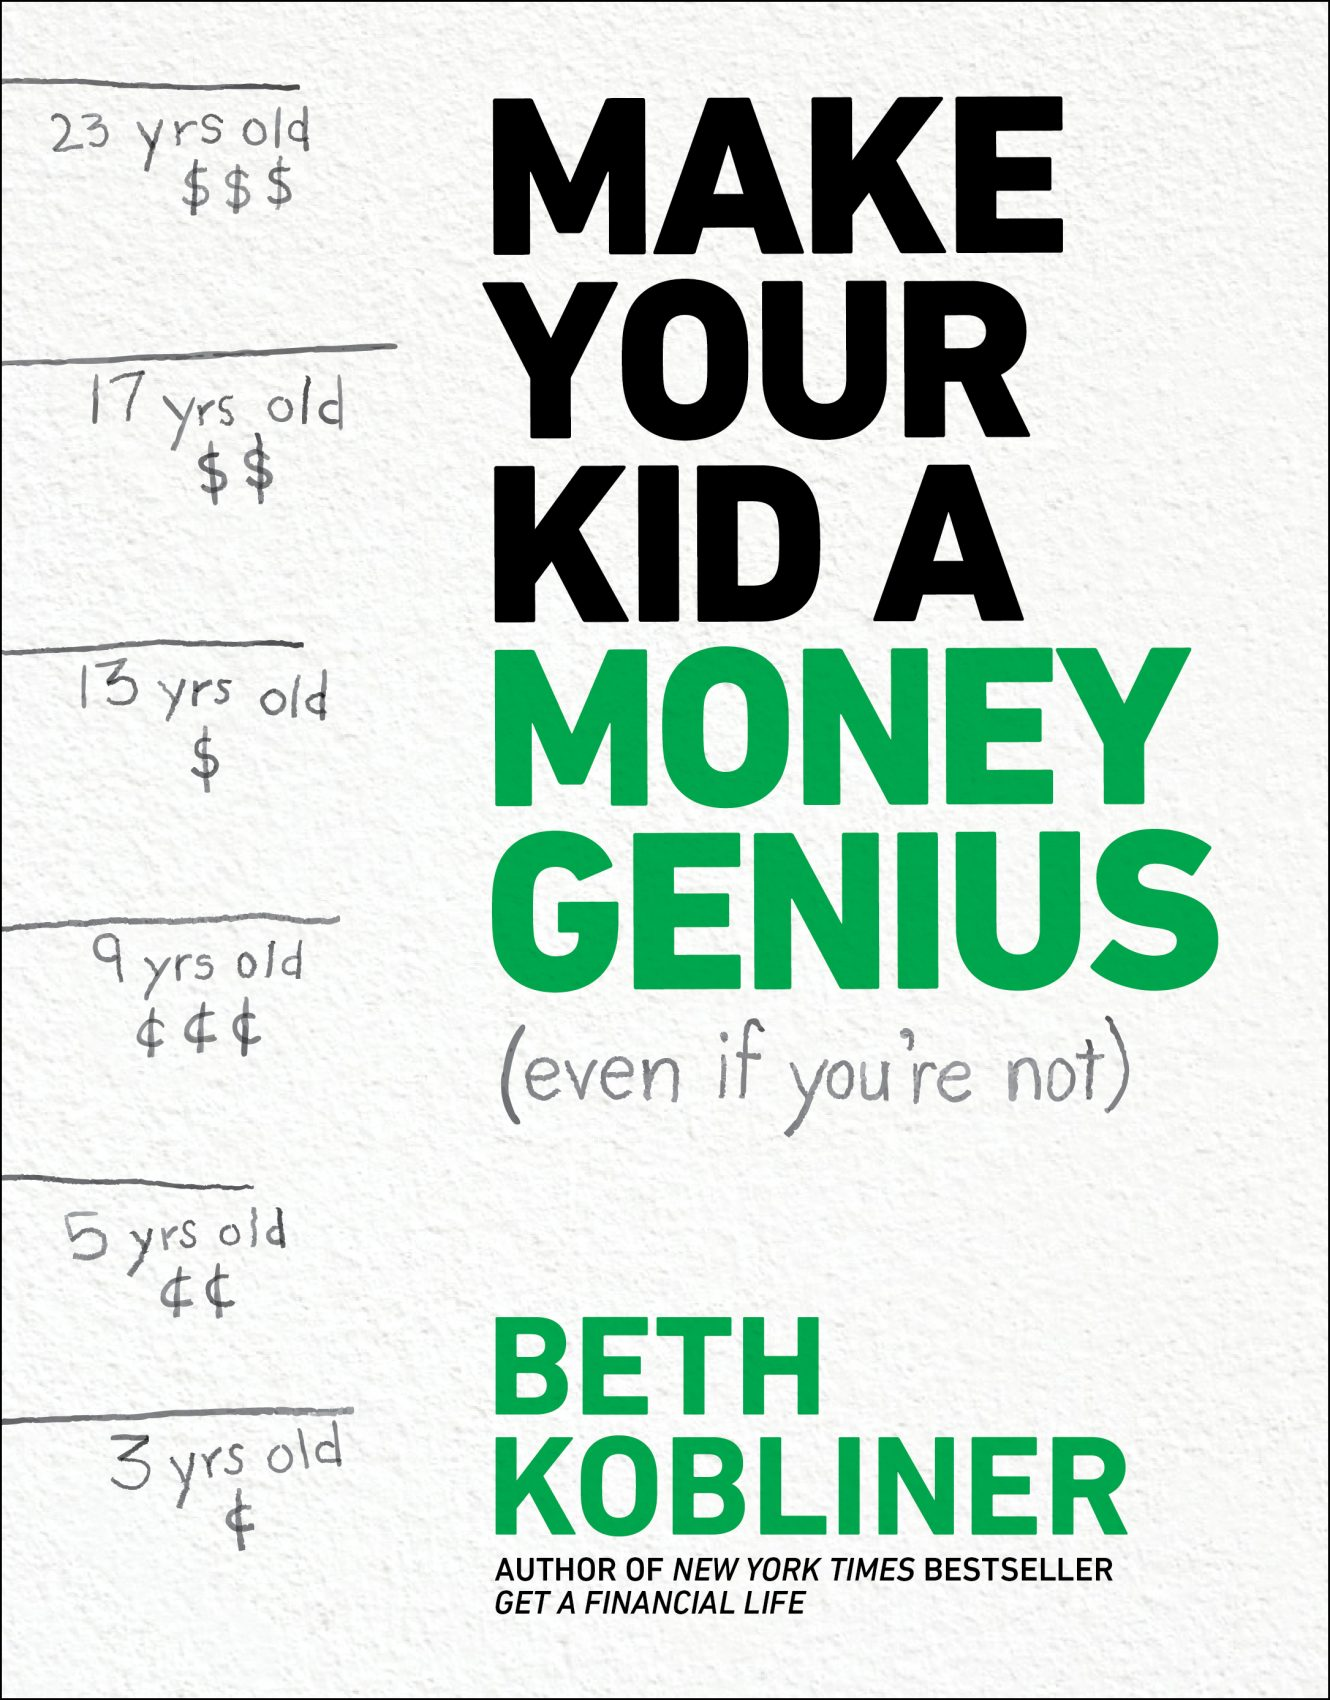 How To Teach Kids Money Smarts From An Early Age | Here & Now